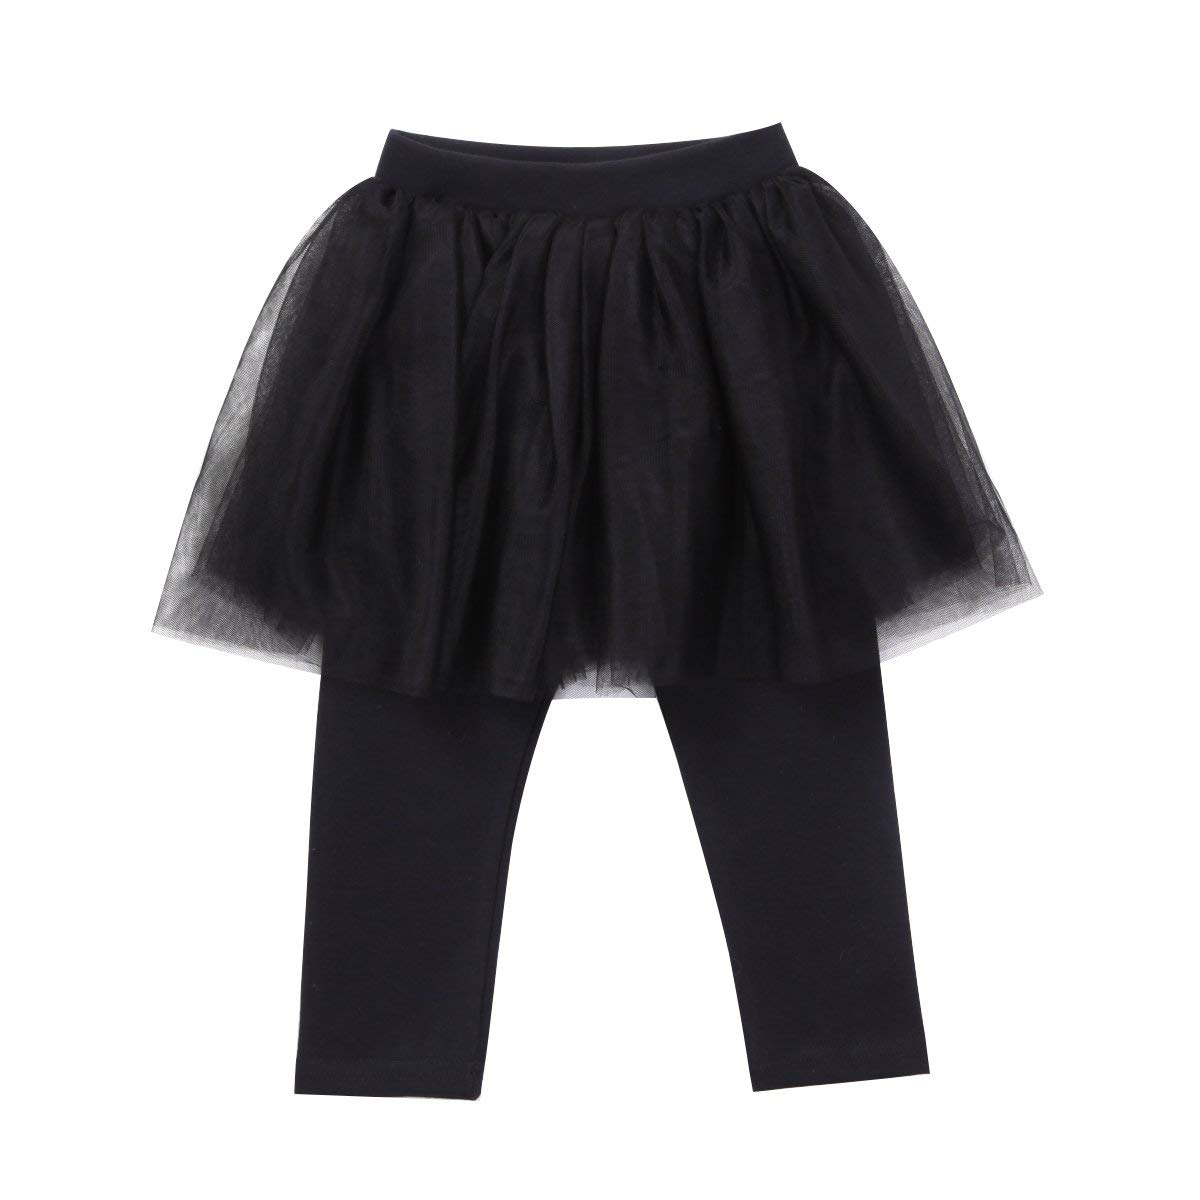 15c1796a0f5fd Get Quotations · Imcute Kids Baby Girls Outfit Cotton Stretch Tutu Skirt Leggings  Tights Pants One Piece